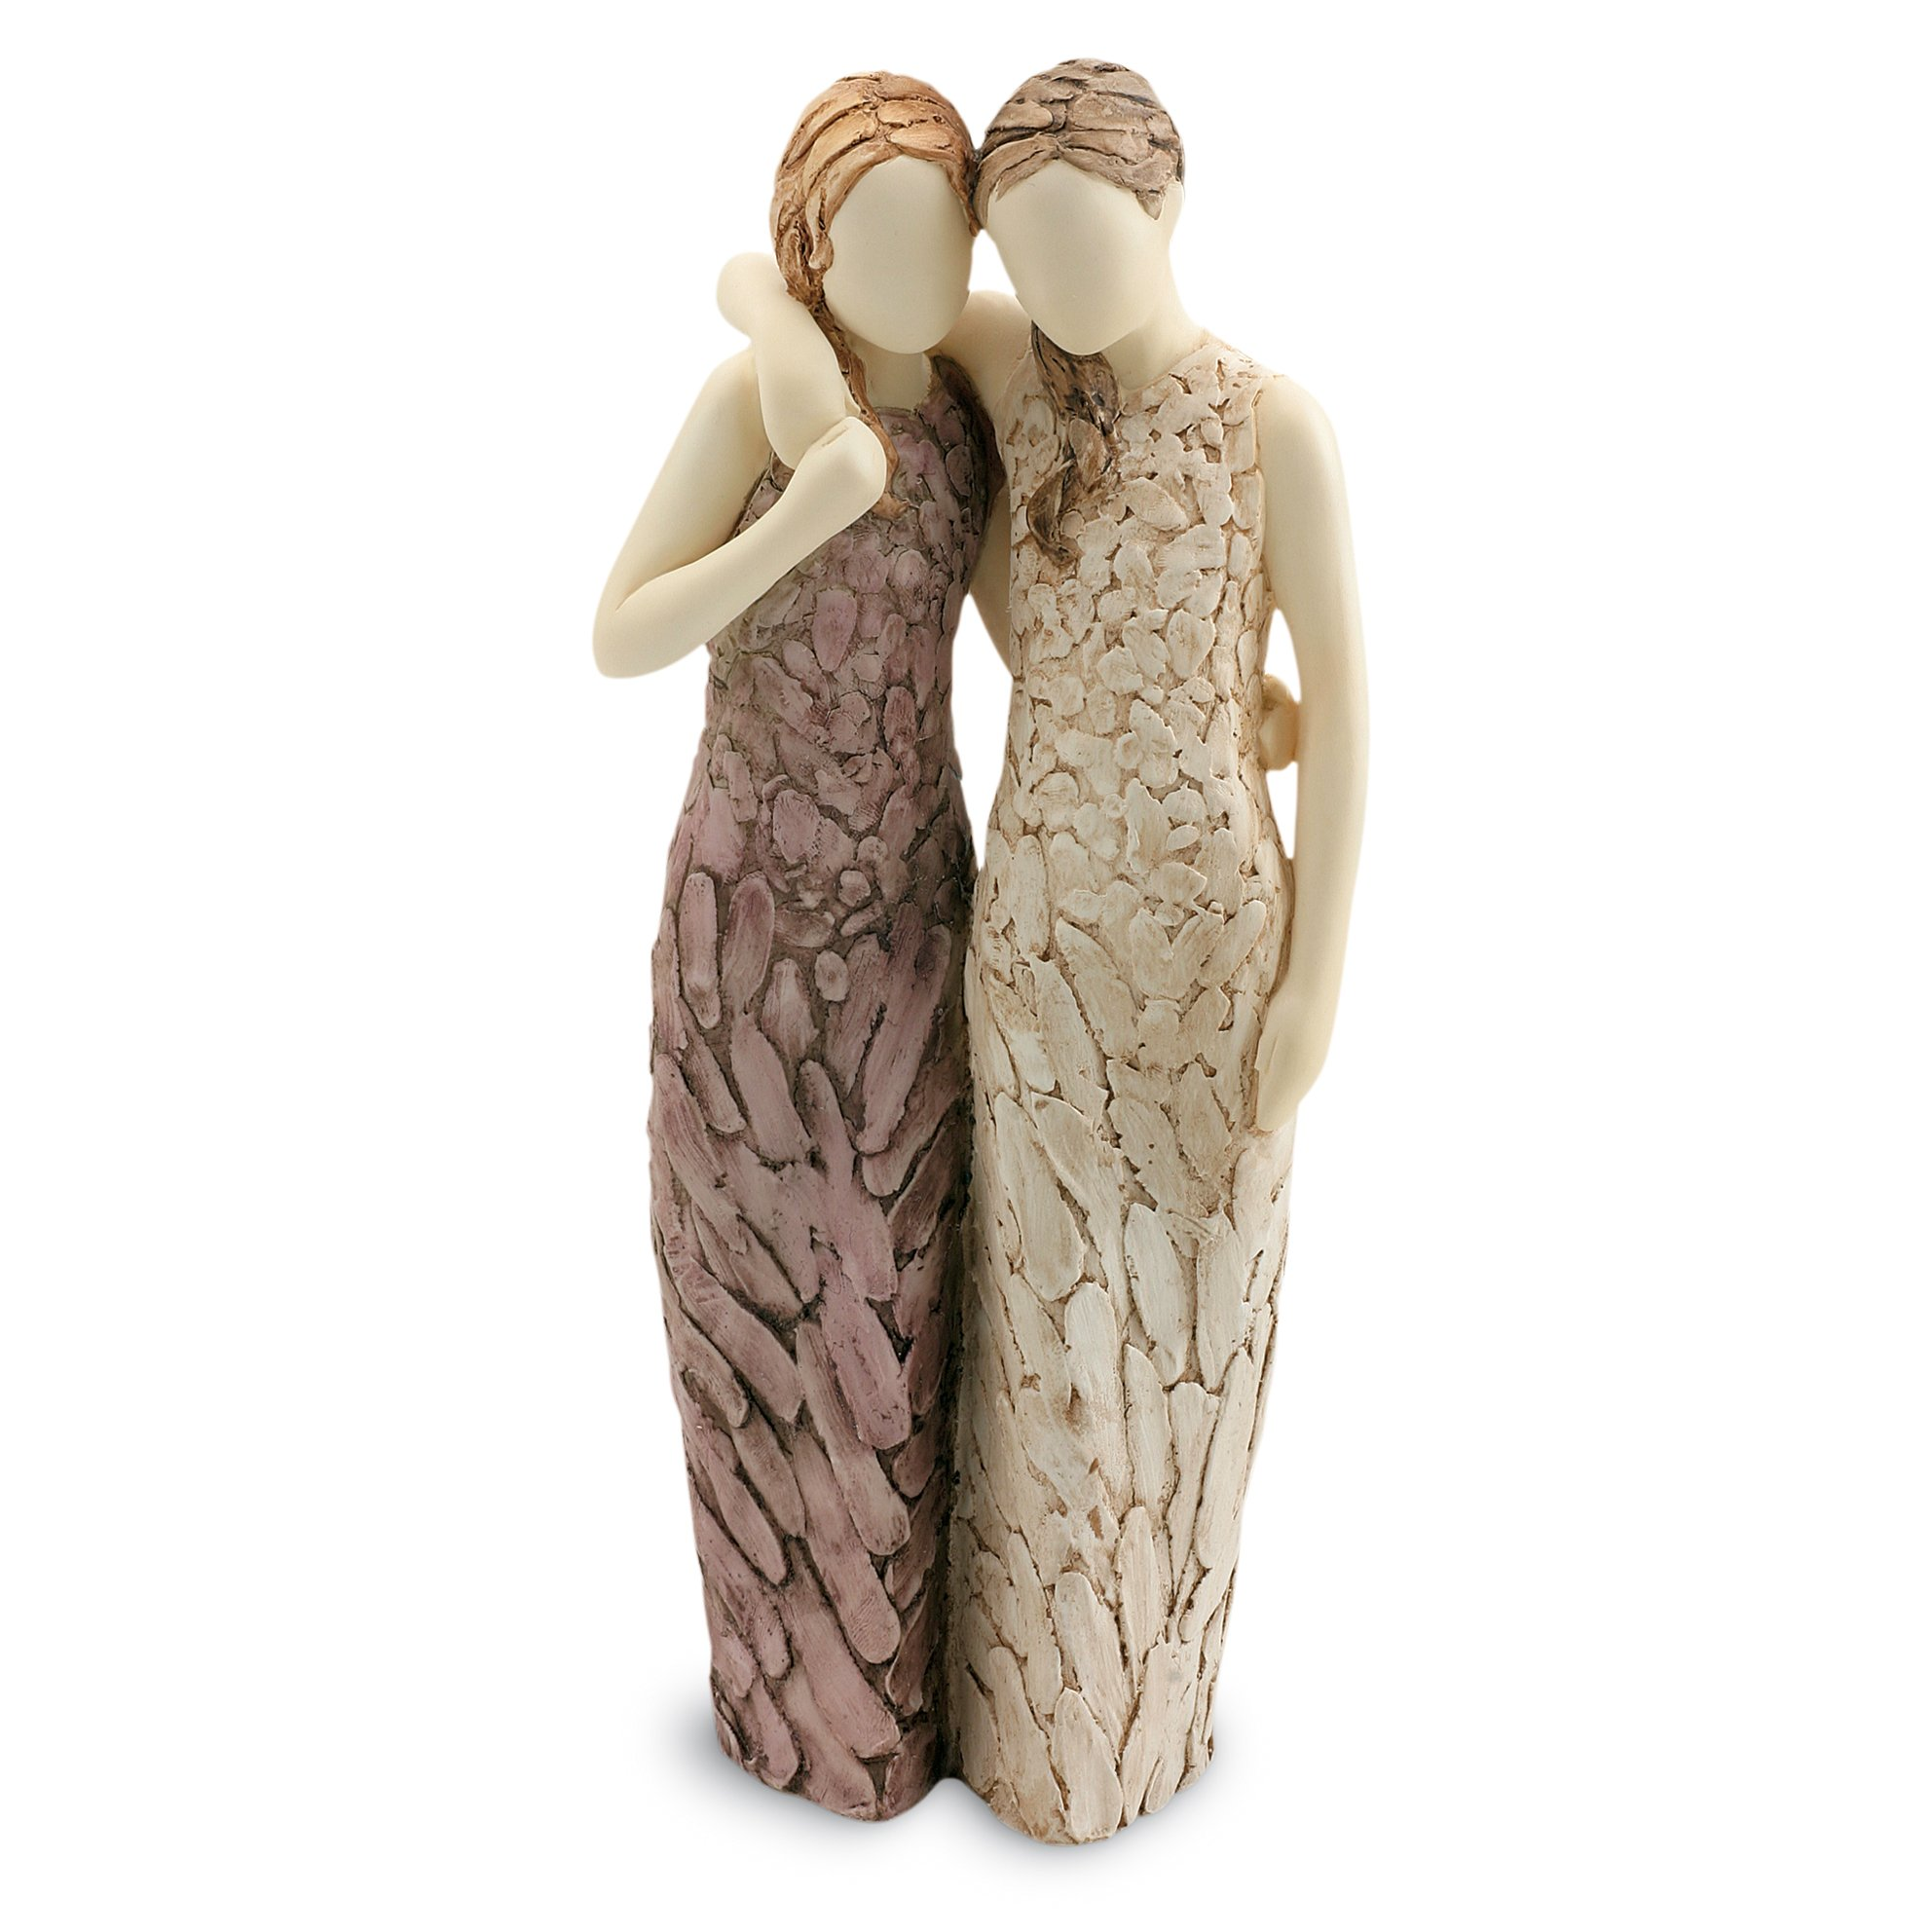 More Than Words Special Friend Figurine by Arora Design Ltd by More Than Words